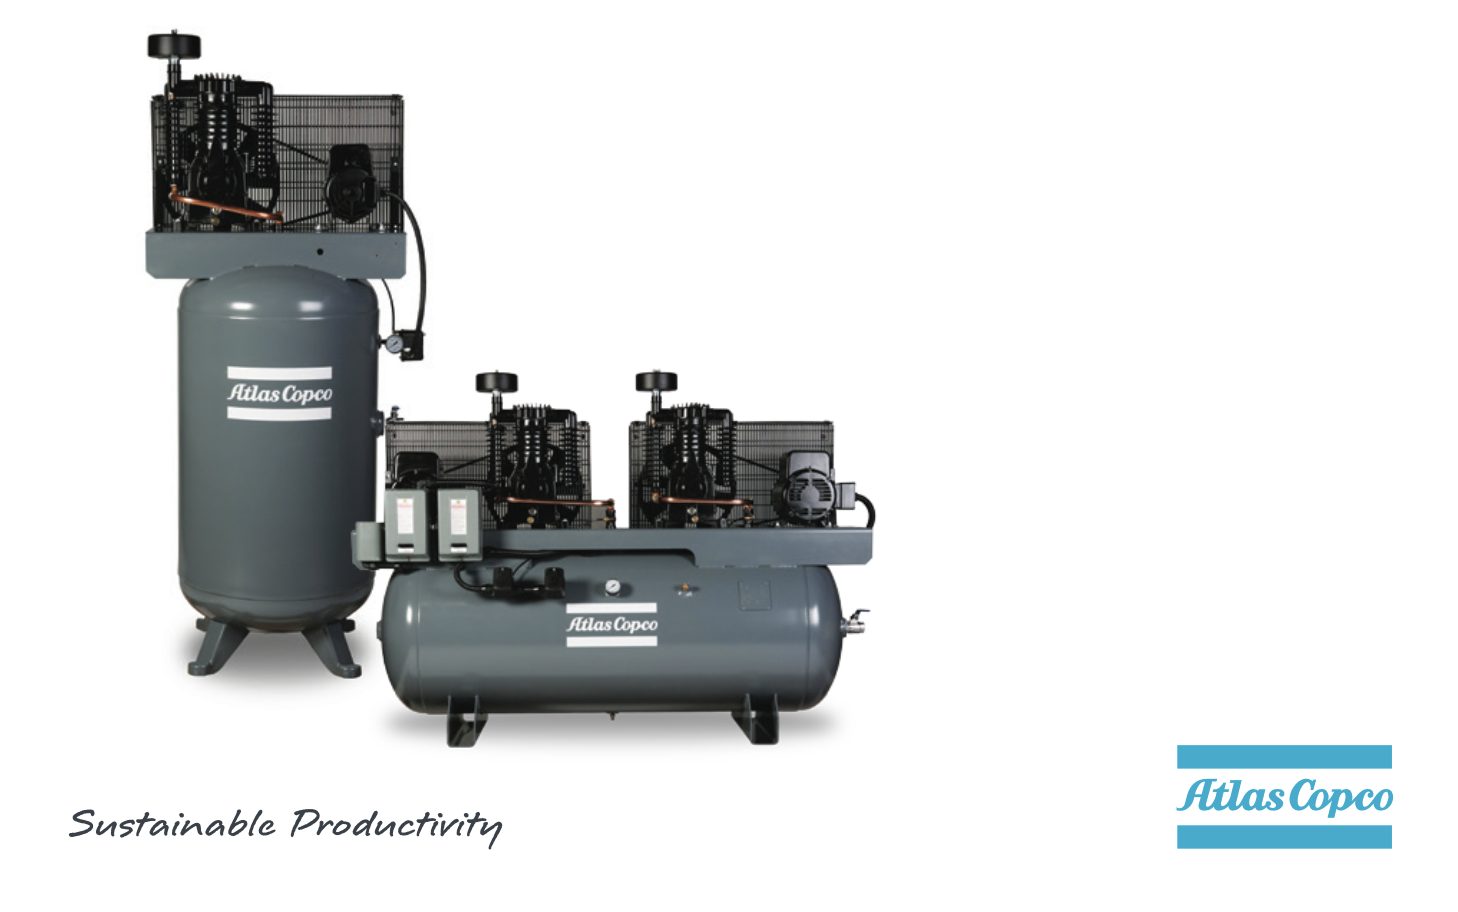 AR SERIES – Contractor – Medium Duty Reciprocating Air Compressors    2-20 HP Single & Two Stage, Simplex, Duplex, Portable Electric & Gas    Ideal for Contractors, Automotive, & Small to Medium Shops.